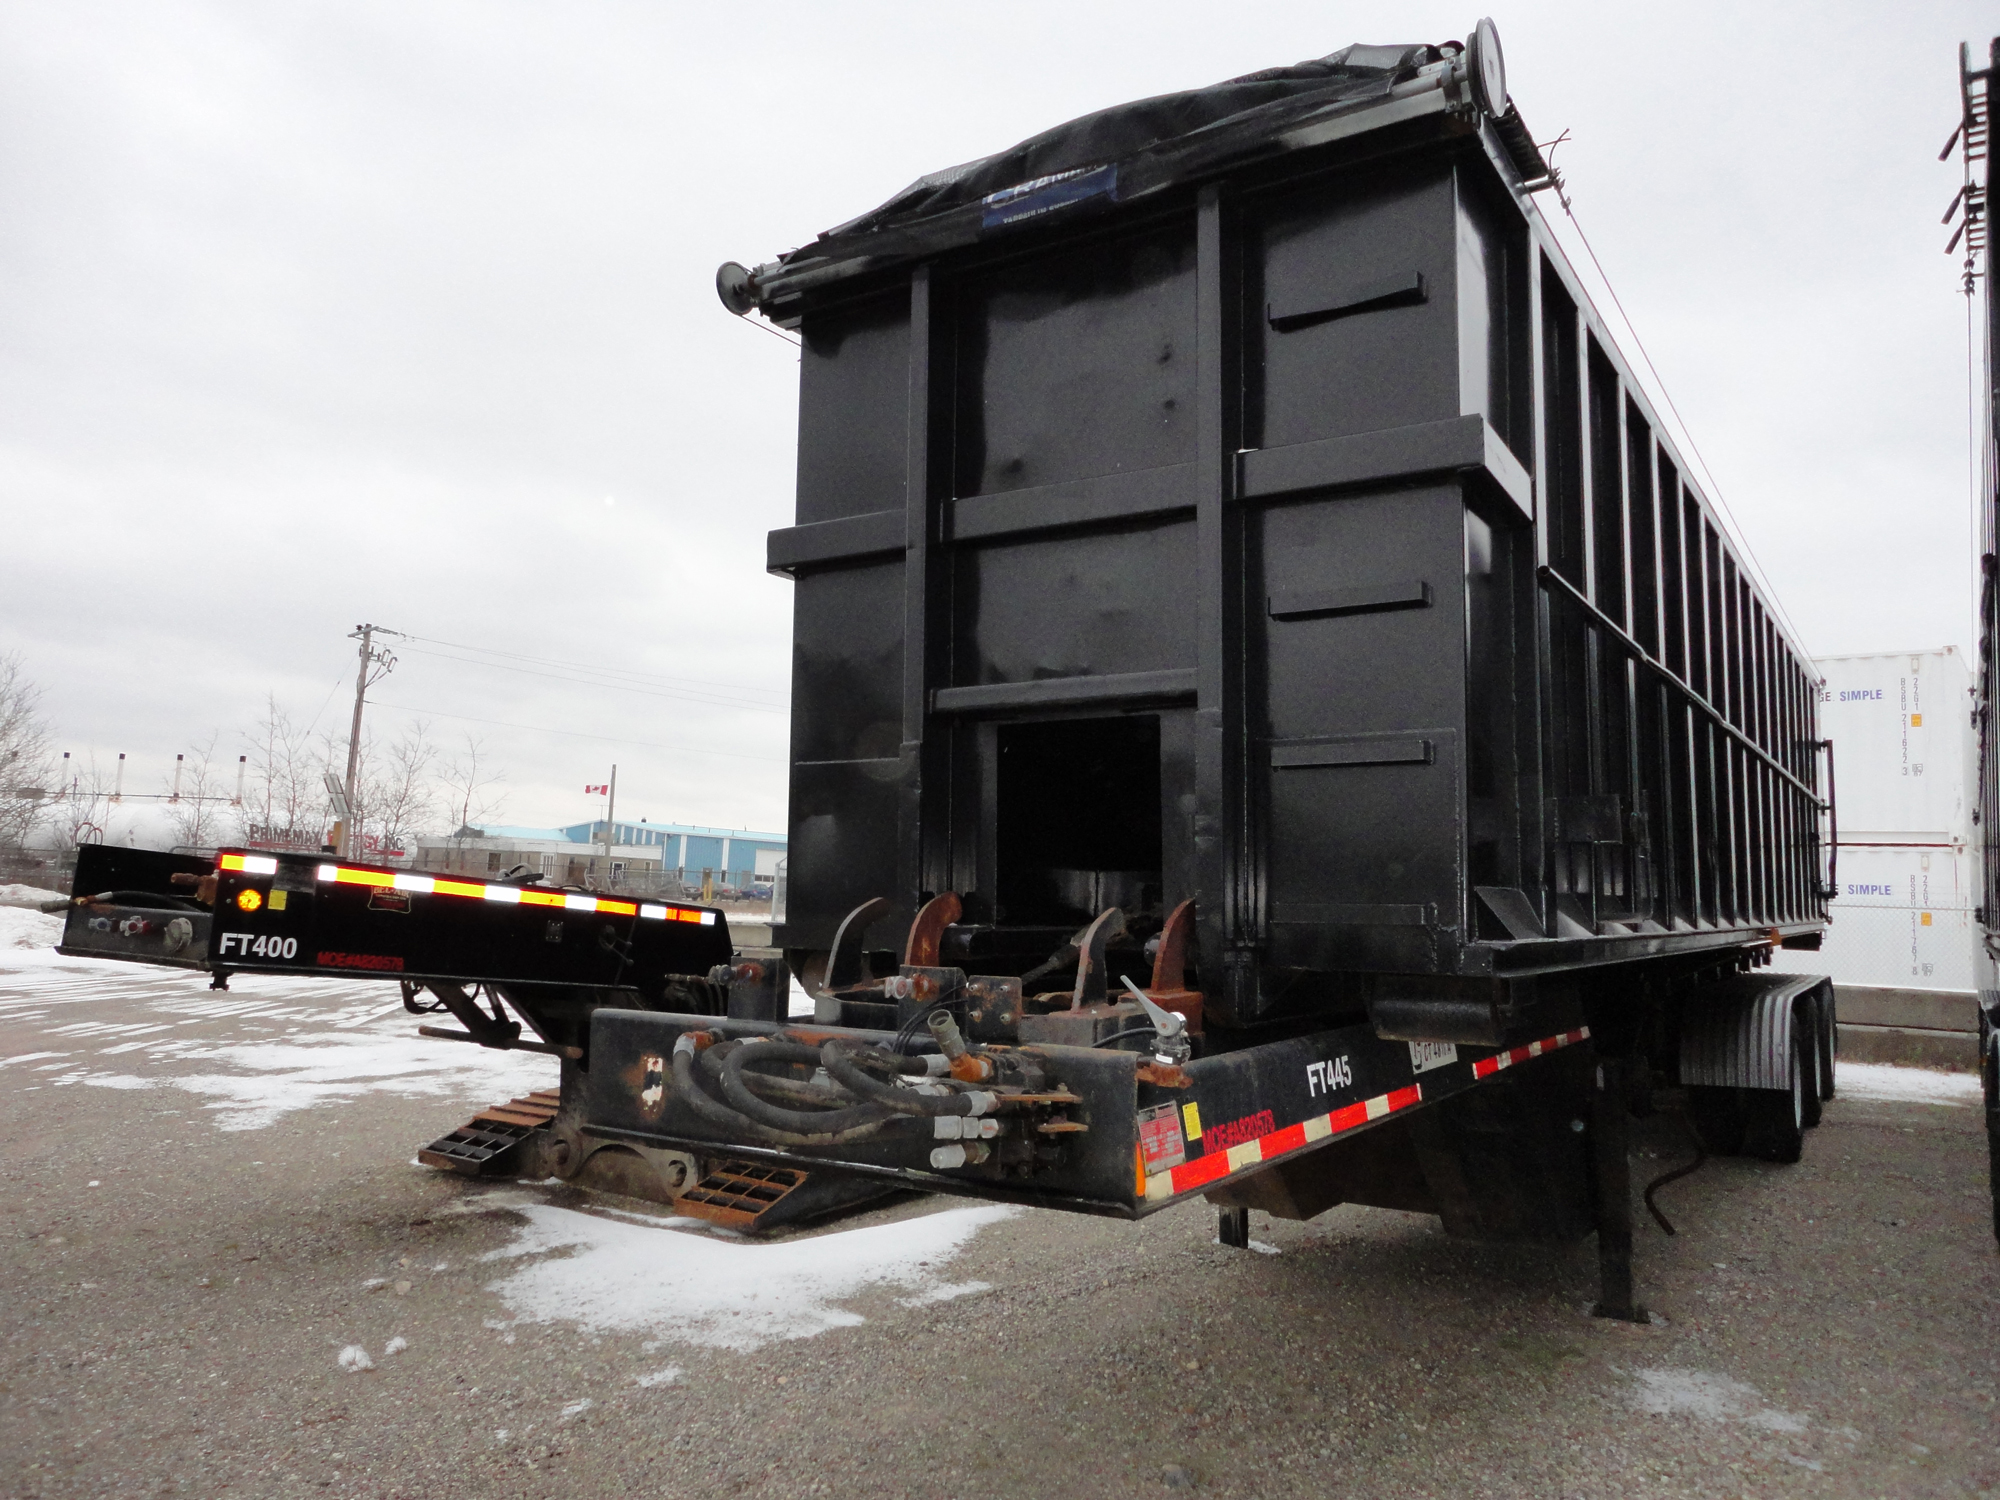 Chagnon Trailer 1996 for sale from grading and excavation company Cambridge